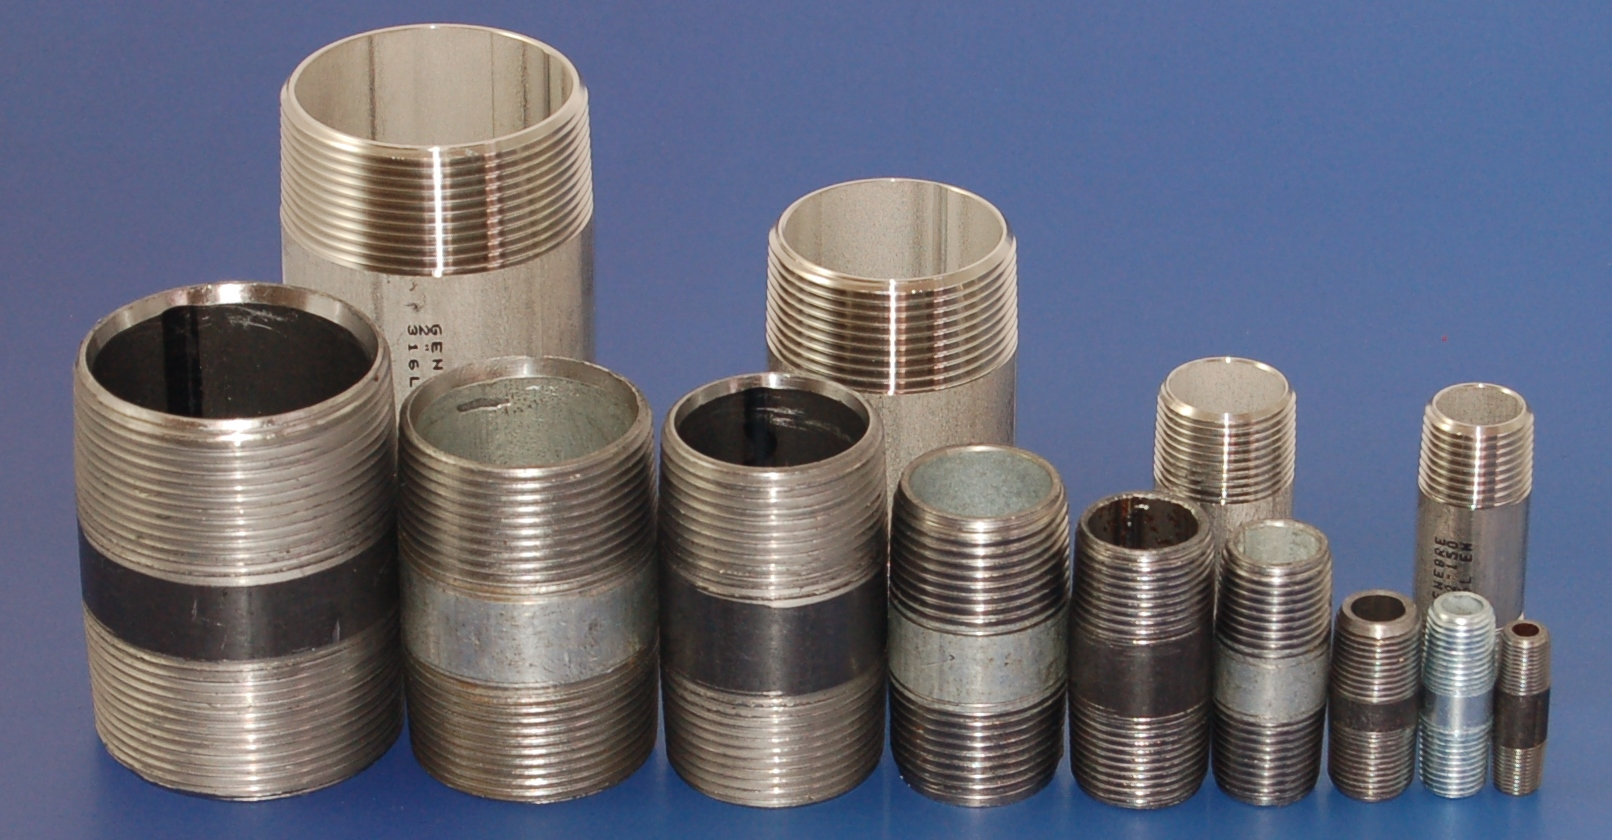 Threaded pipe fittings from besseges vtf ltd